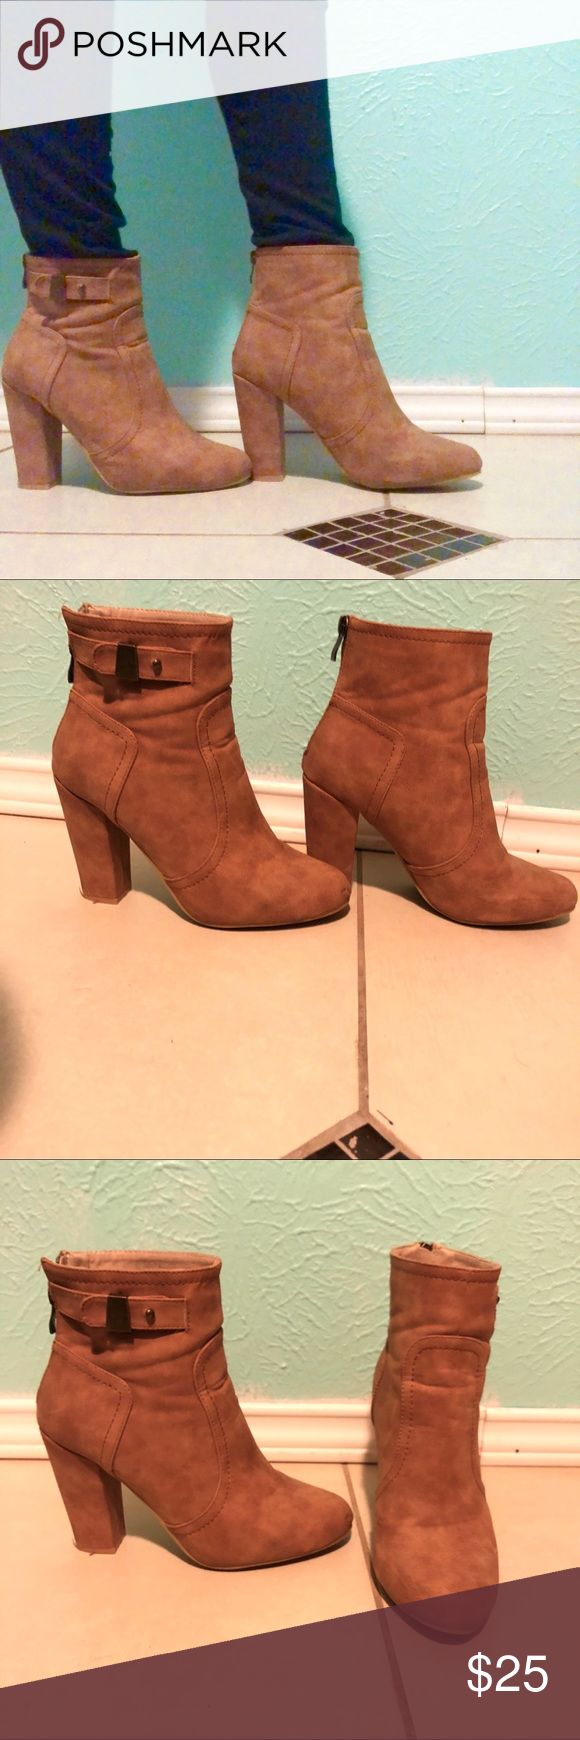 Heel Booties!! ❤️😍 Super comfortable and cute!! 😍 Zipper works great going up but to go down it takes a while other than that its amazing! Love them! ❤️ Heel is approximately 4 in. ✨🛍🎉 M&L Beverly Hils Shoes Heeled Boots